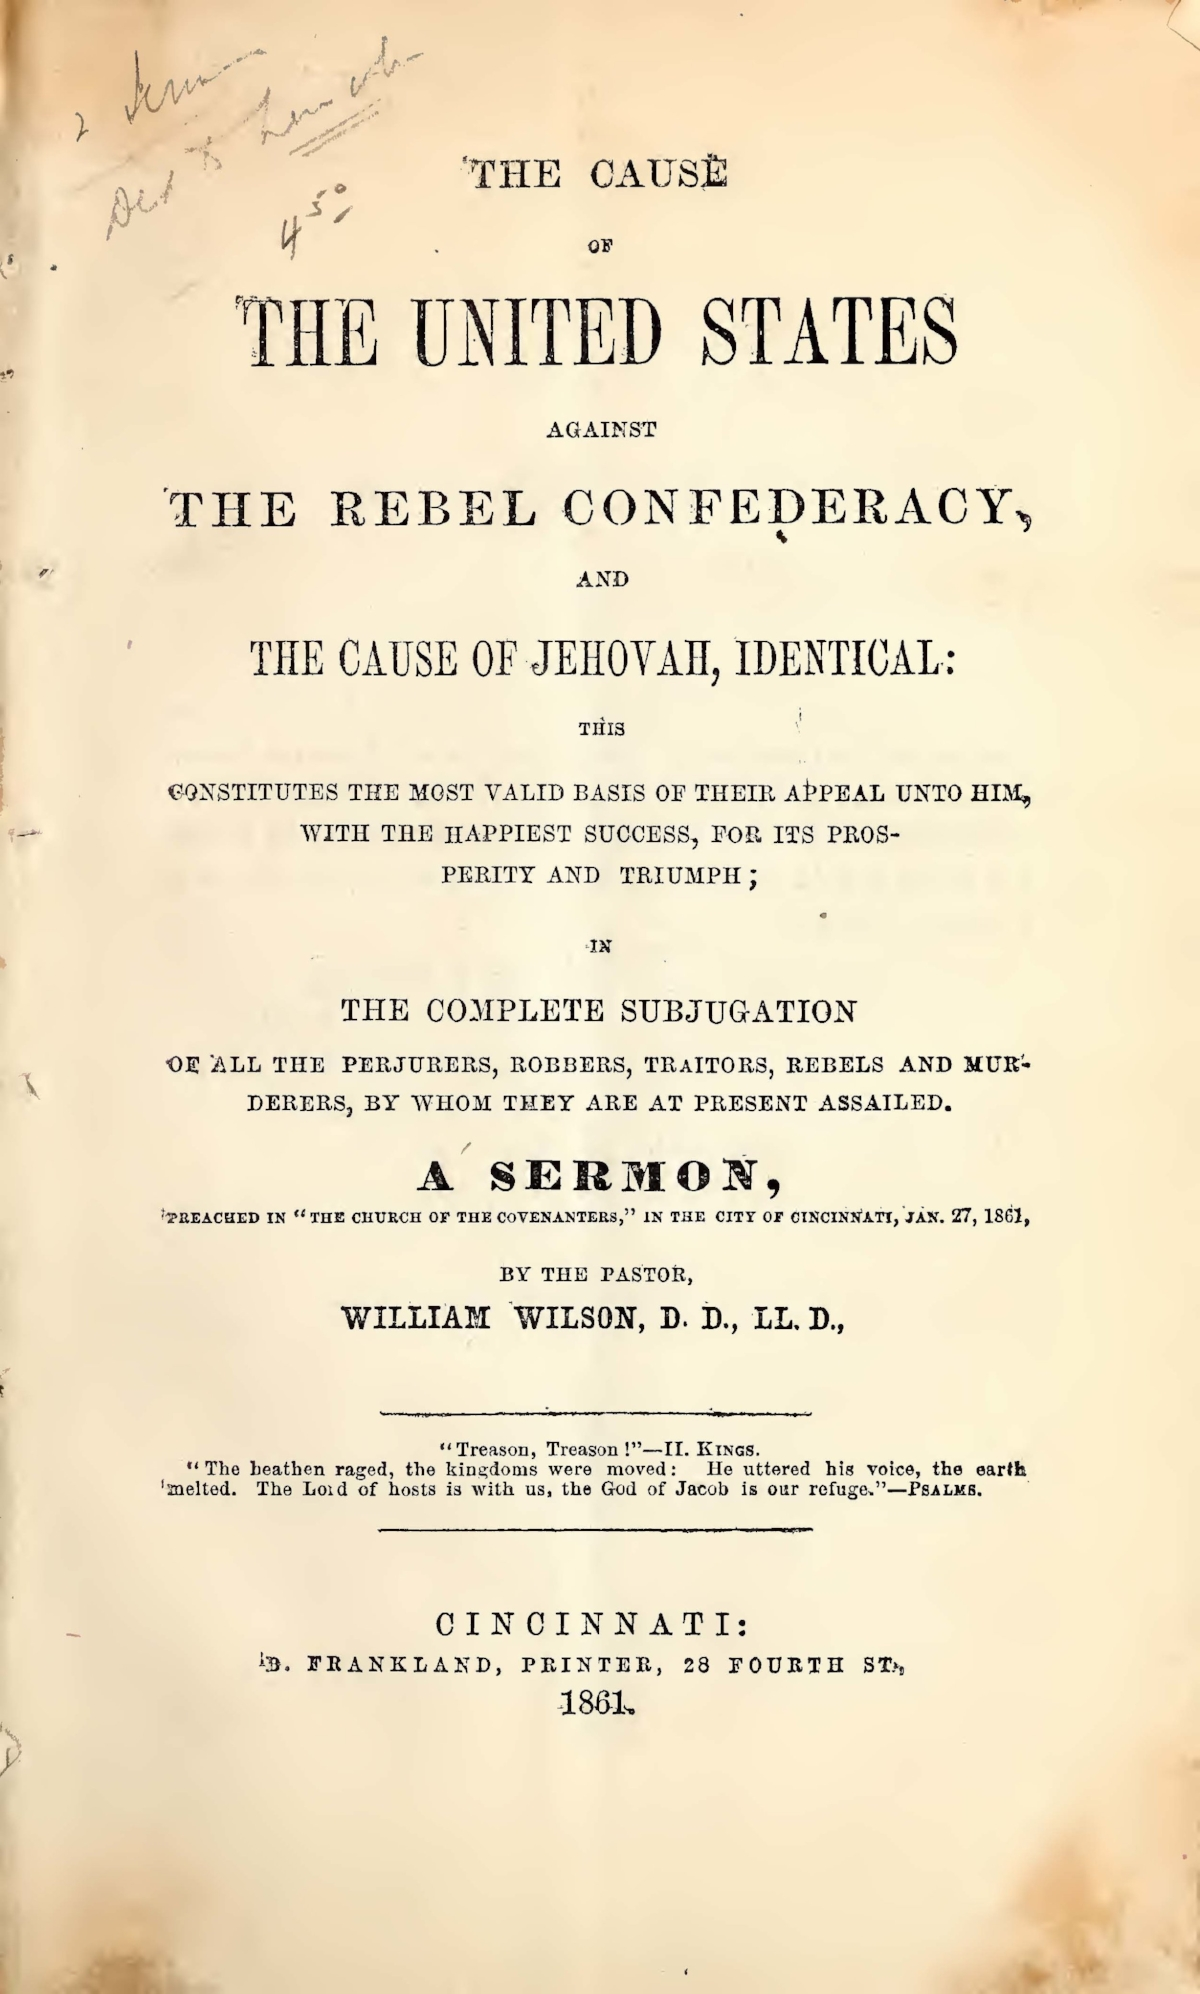 Wilson, William, The Cause of the United States Against the Rebel Confederacy Title Page.jpg